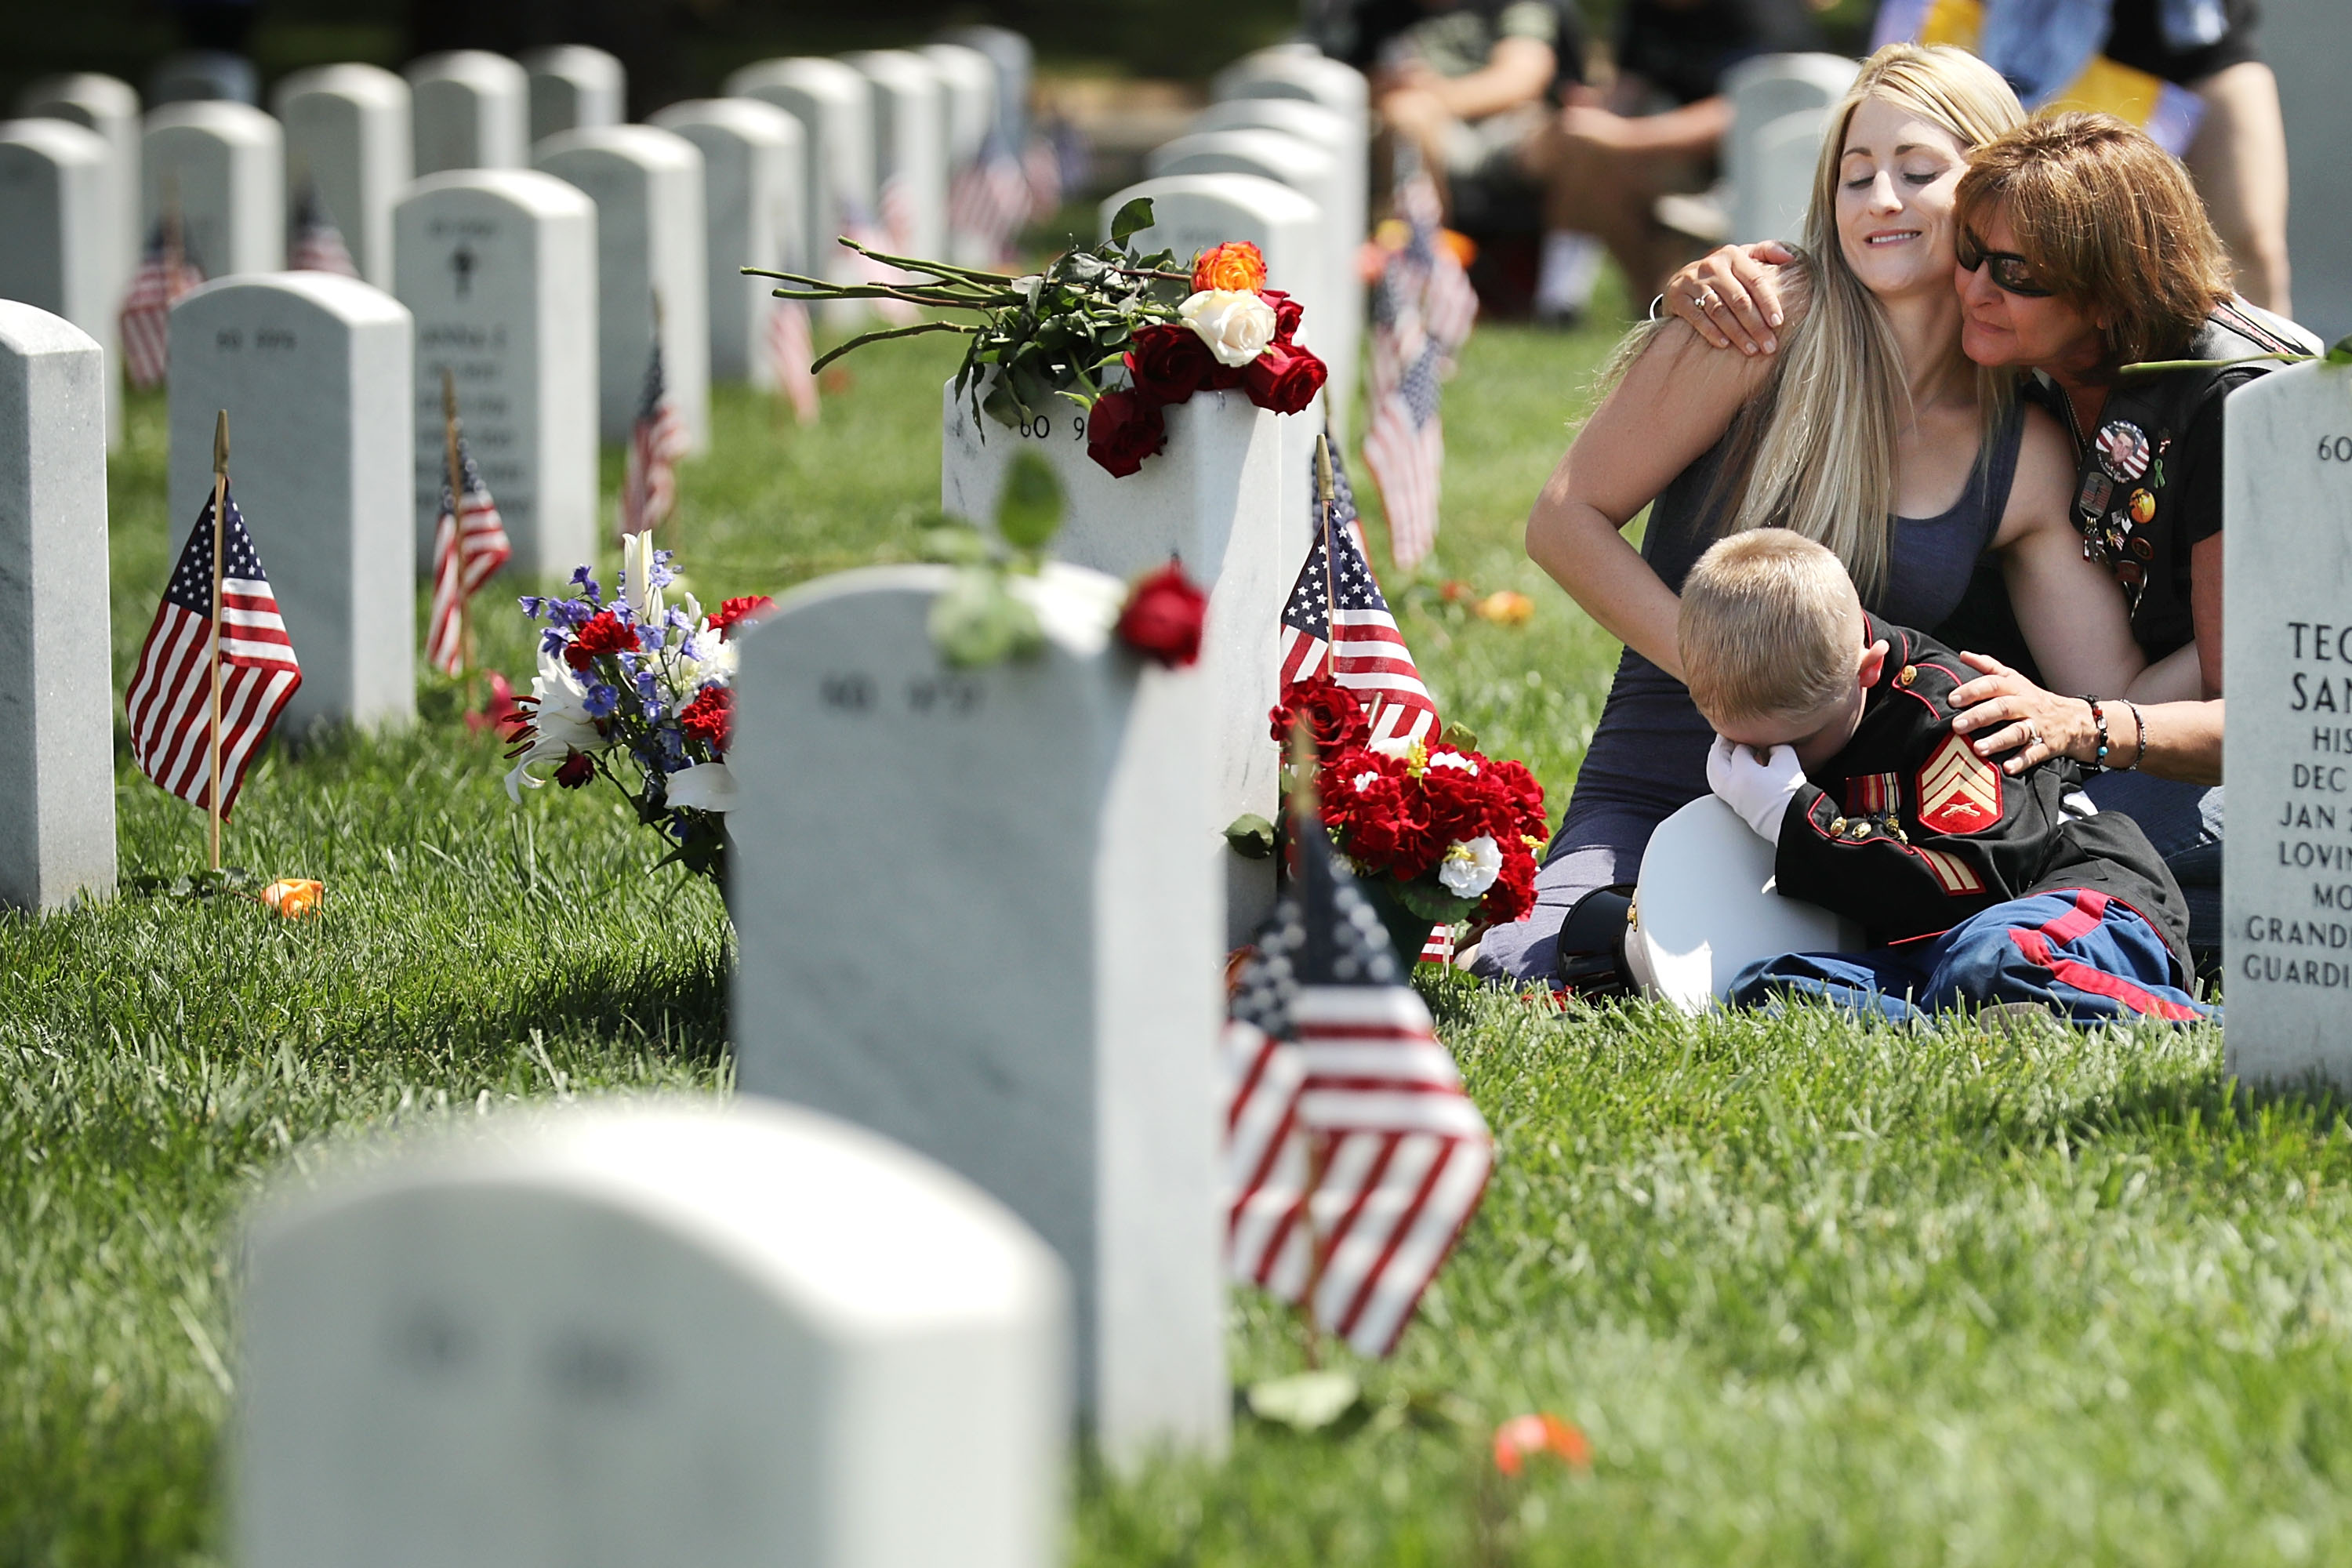 ARLINGTON, VA - MAY 29: Brittany Jacobs (L) of Hertford, North Carolina, and her son, Christian Jacobs, 6, are embraced by a friend while sitting next to the grave of Brittany's husband, U.S. Marine Corps Sgt. Chris Jacobs, in Section 60 at Arlington National Cemetery on Memorial Day May 29, 2017 in Arlington, Virginia. Part of the 3rd Assault Amphibian Battalion, 1st Marine Division, Sgt. Jacobs served in Aghanistan and Iraq and was killed during a training exercise in California in 2011. (Photo by Chip Somodevilla/Getty Images)